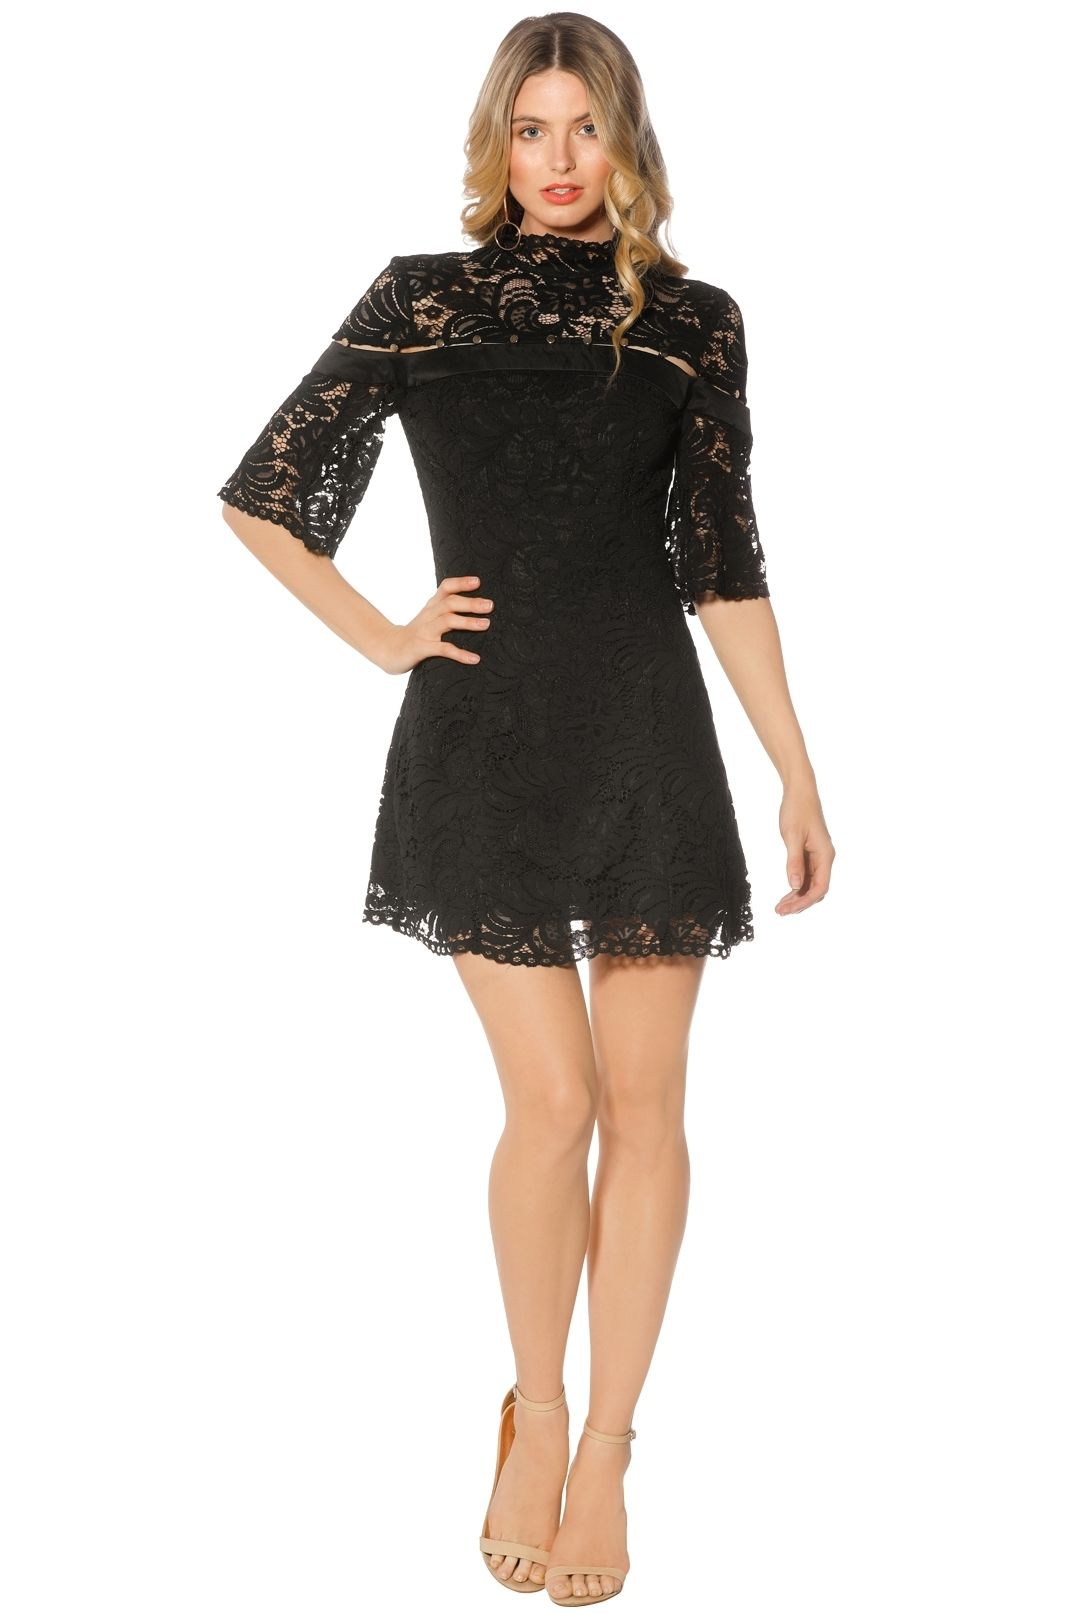 Keepsake The Label - Star Crossed Lace Mini - Black - Front